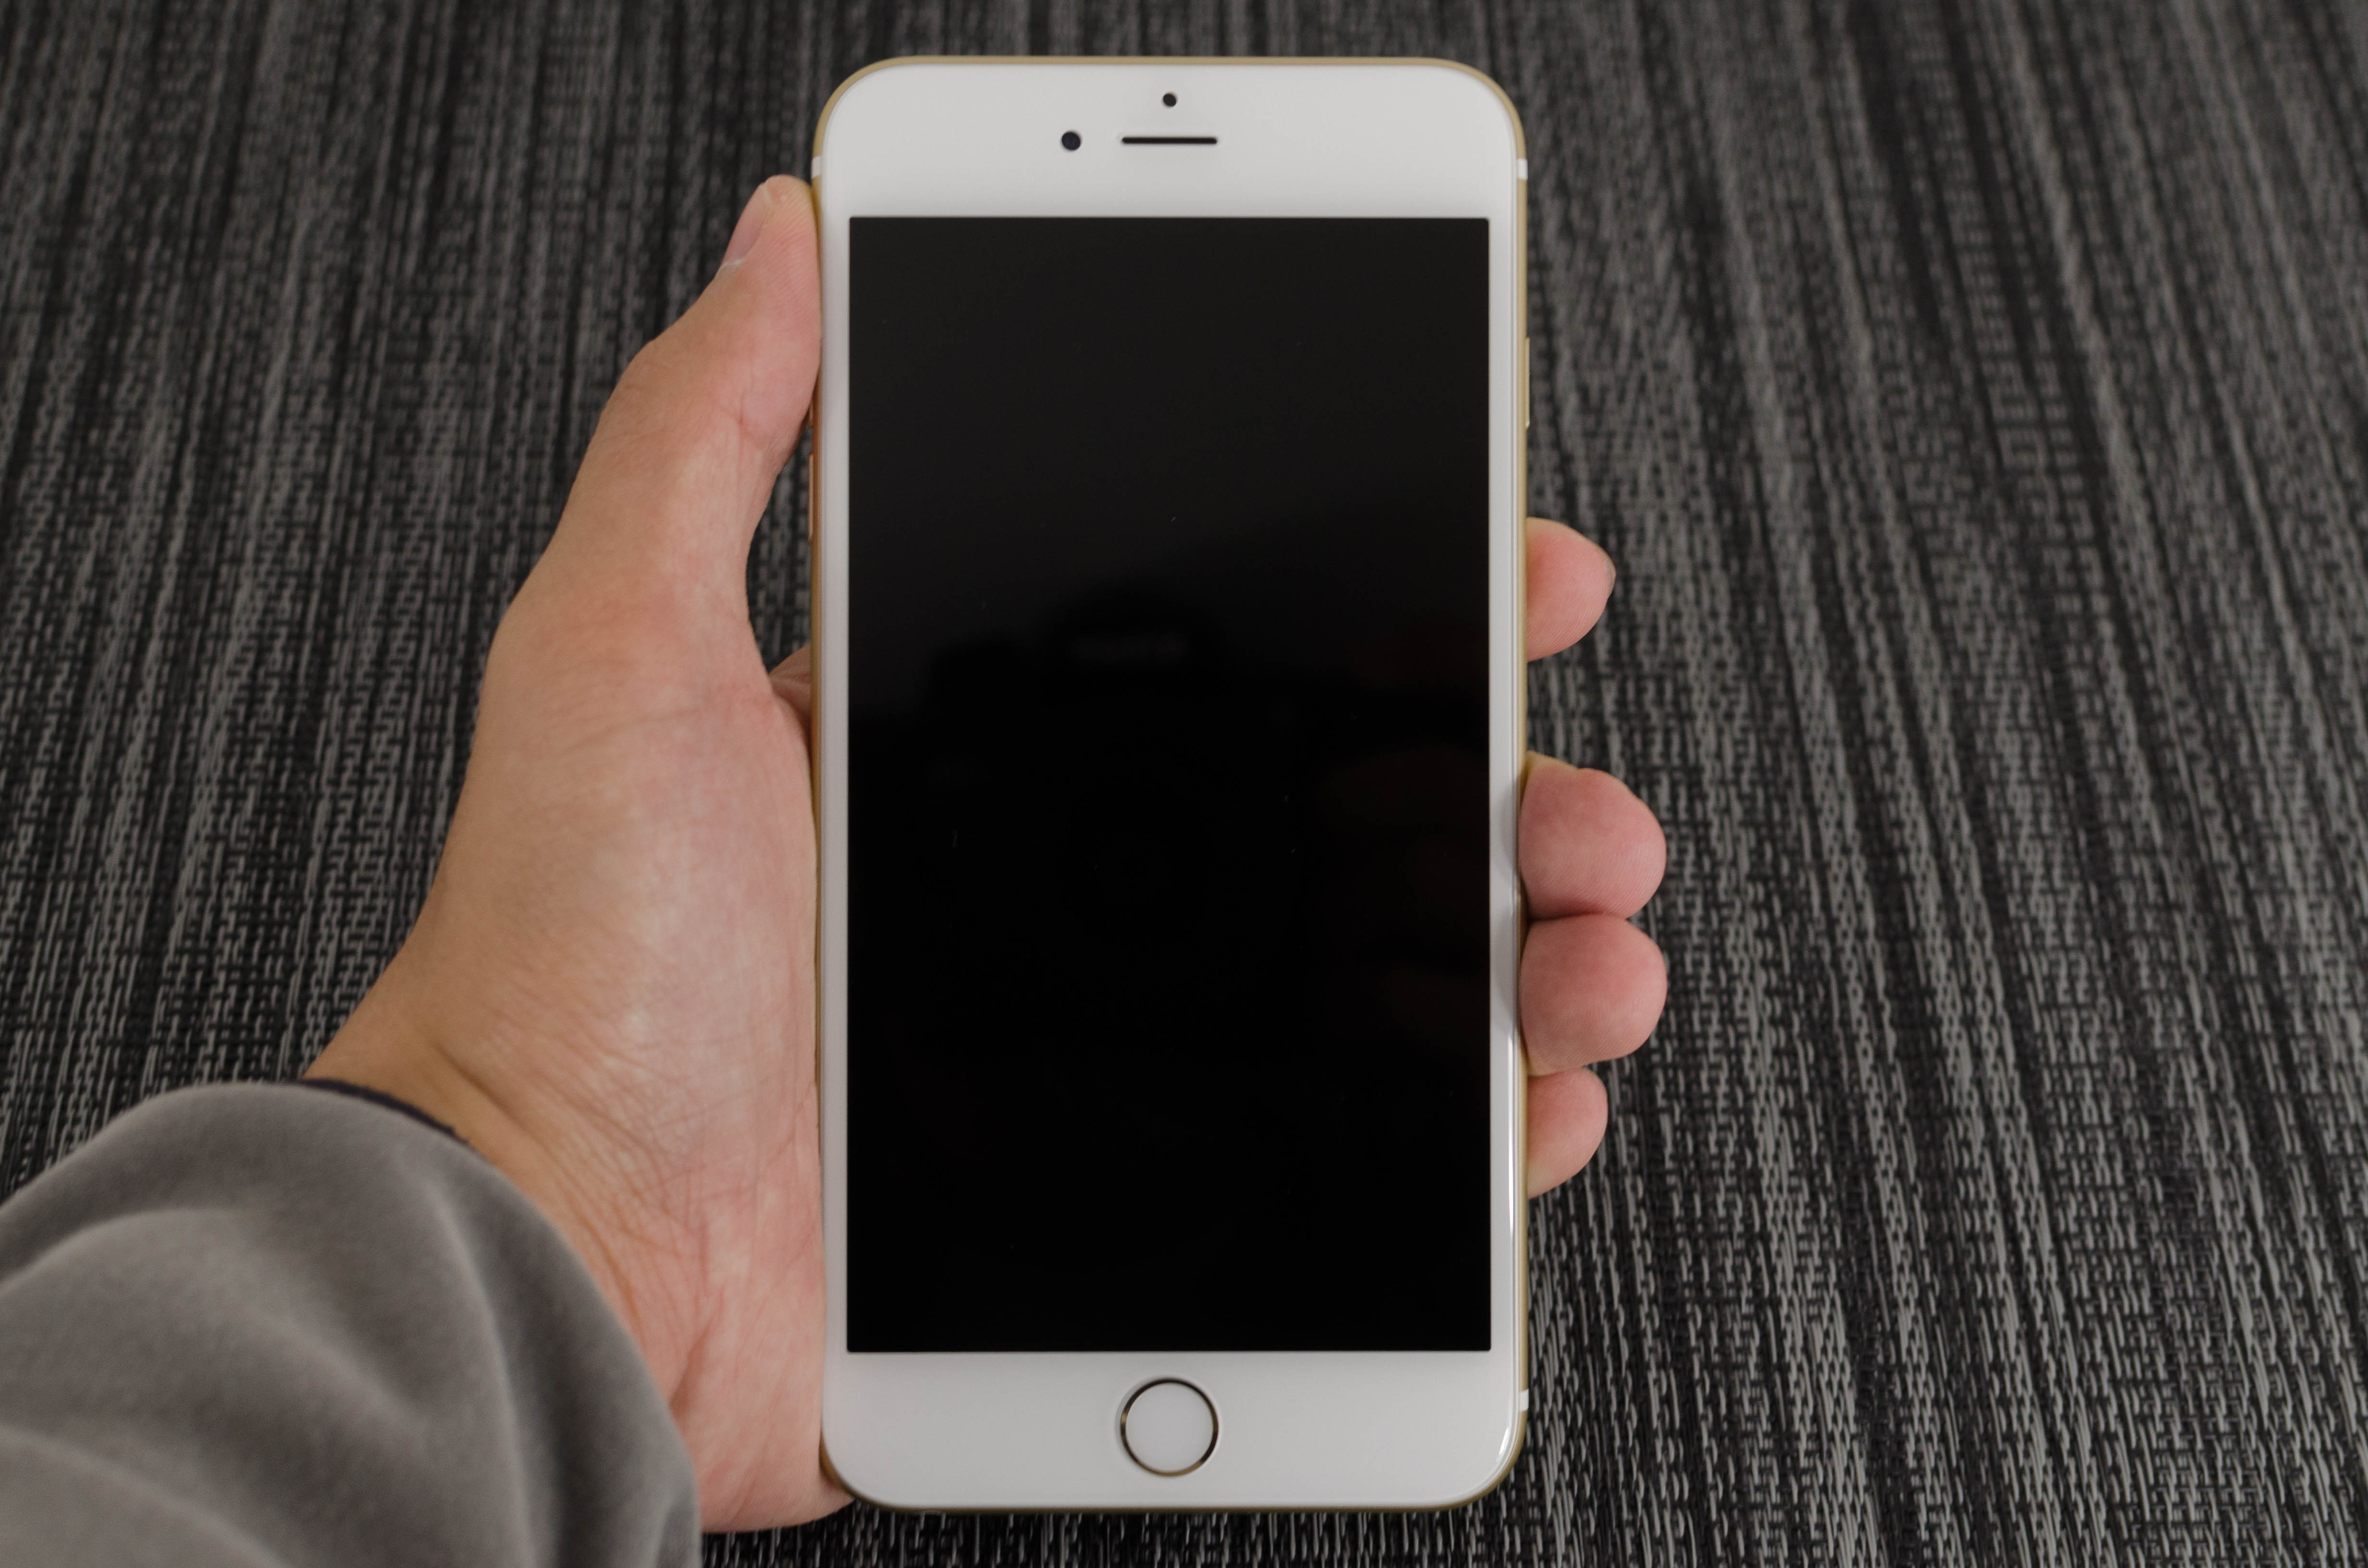 Iphone wallpaper quiz - What Should Be Your New Lock Screen Based On Your Personality Playbuzz